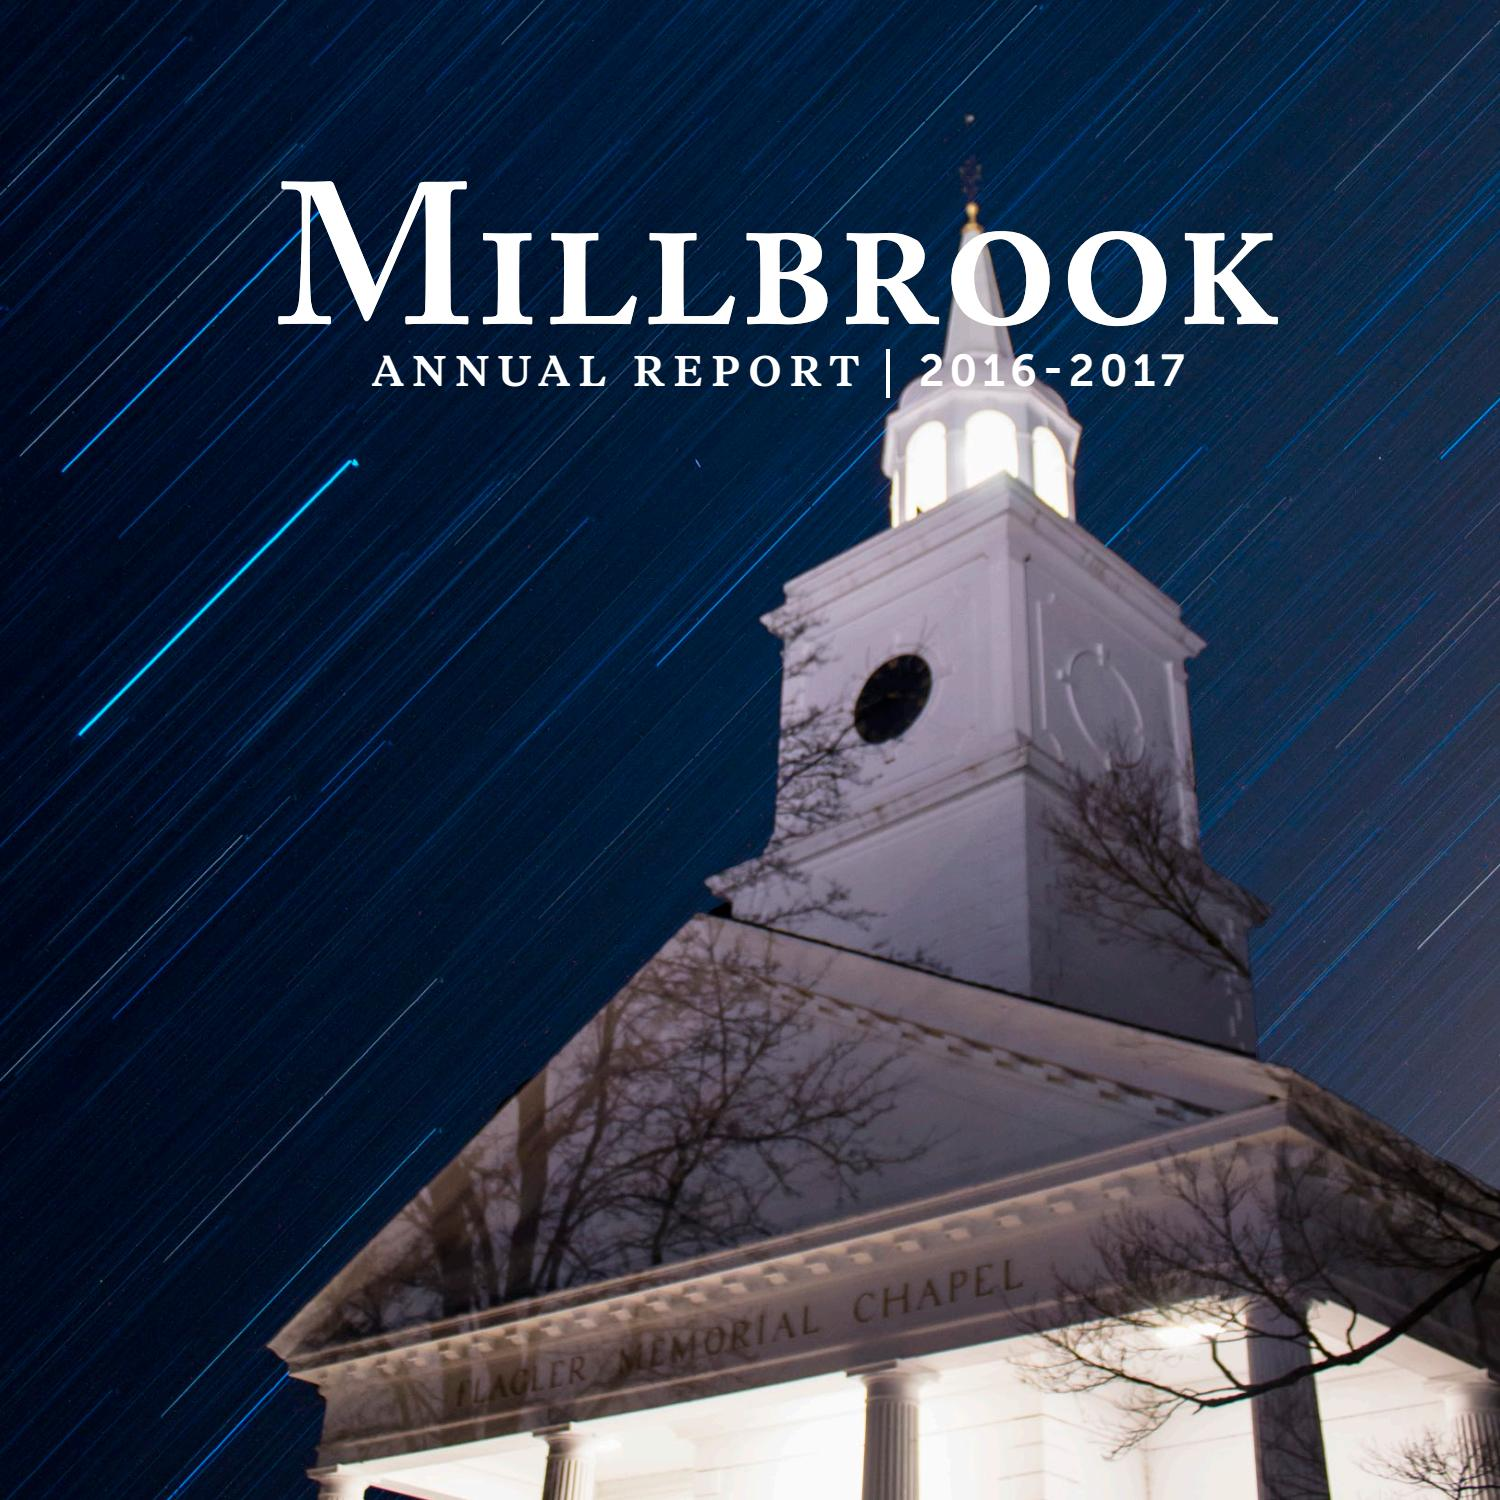 Annual Report/Magazine, Fall 2017 by Millbrook School - issuu